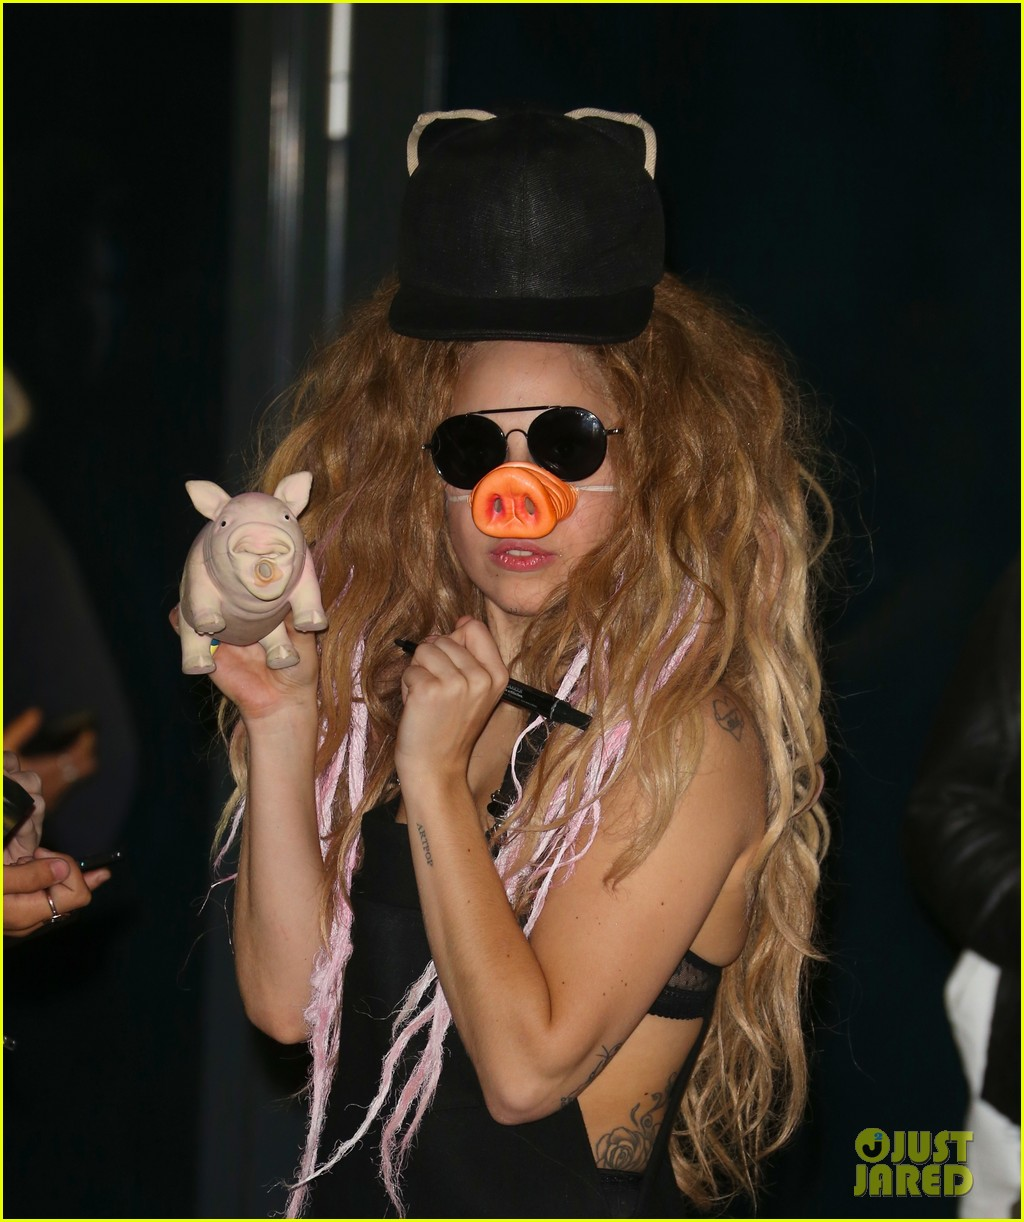 lady gaga wears pig nose at london rehearsal studio 112940927